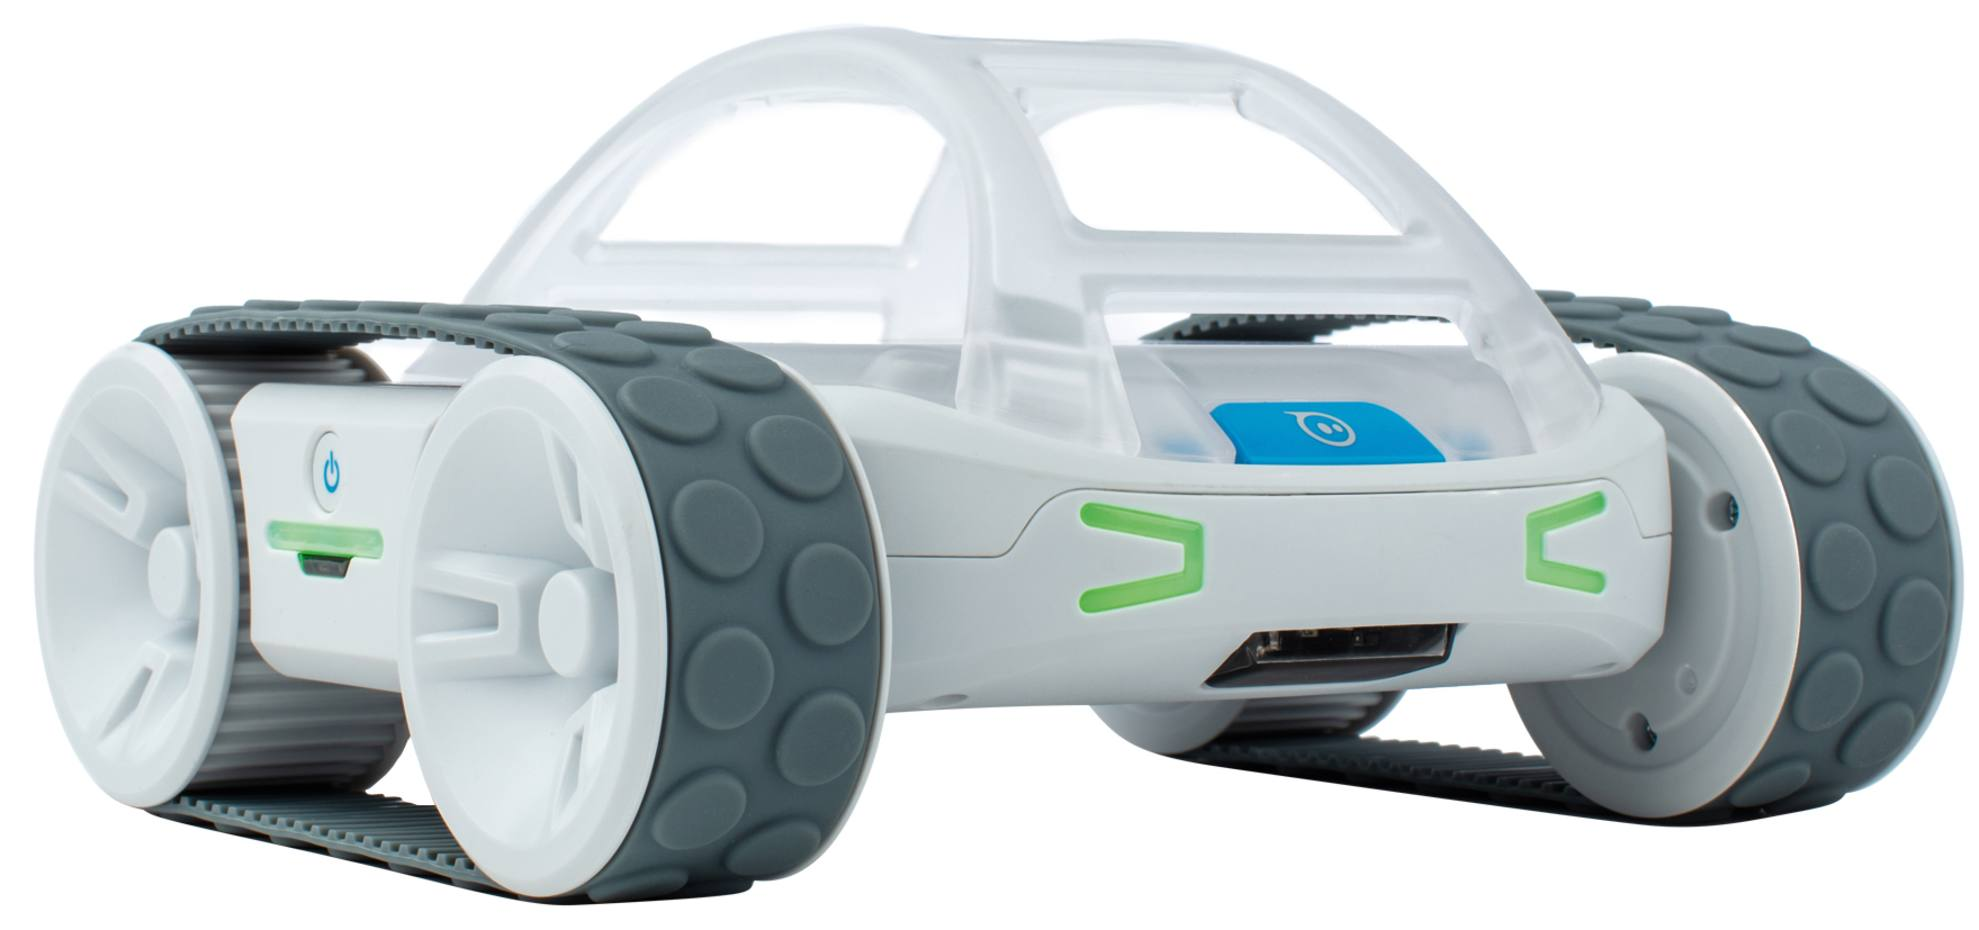 Gadgeteer Sphero launches RVR – its most ambitious product yet